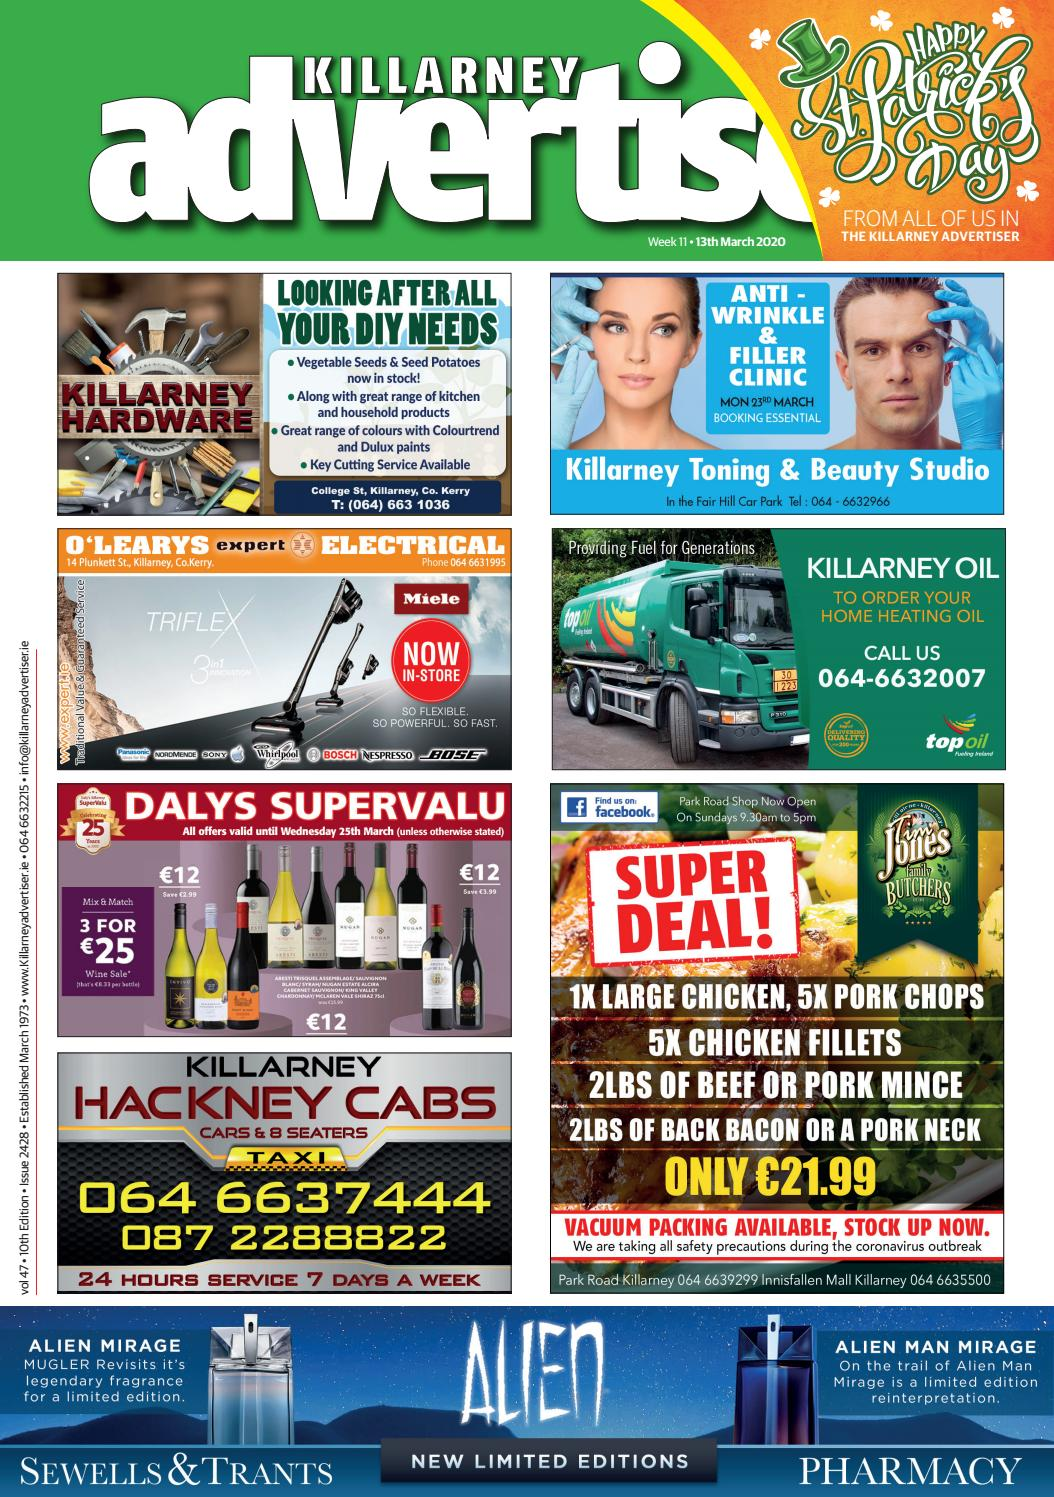 Trains Mallow to Killarney | Cheap Tickets & Times | Trainline